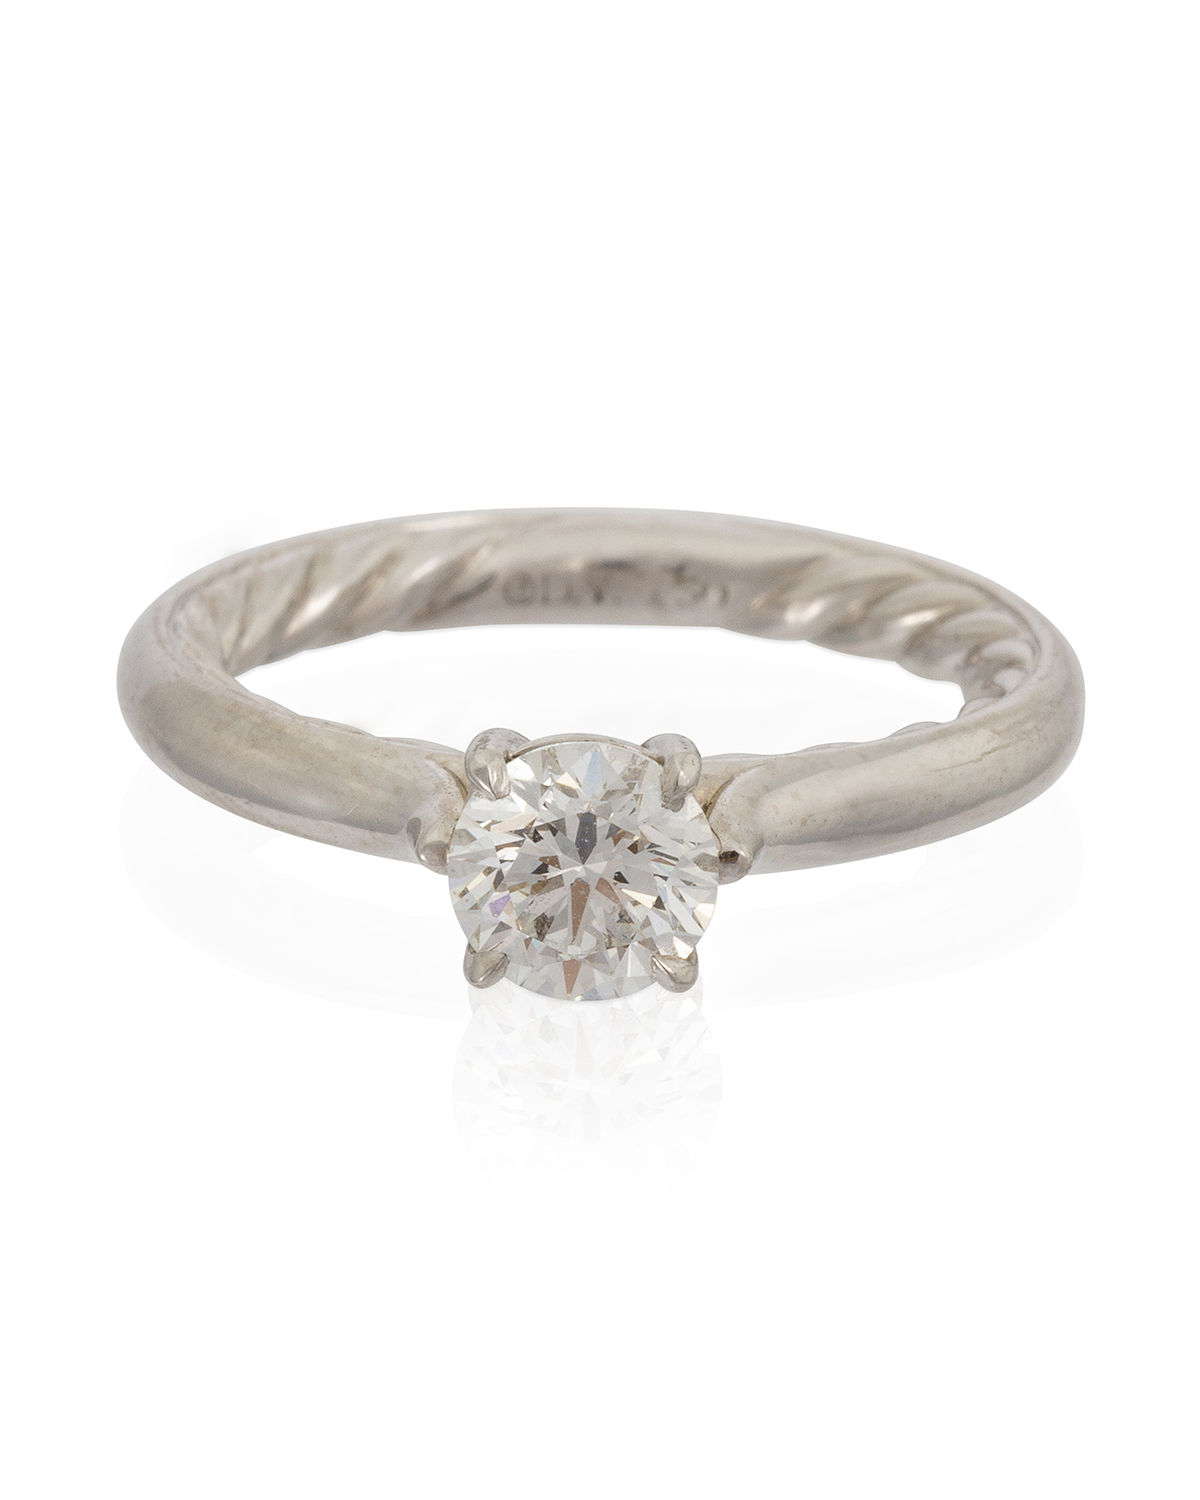 A single stone diamond ring, David Yurman